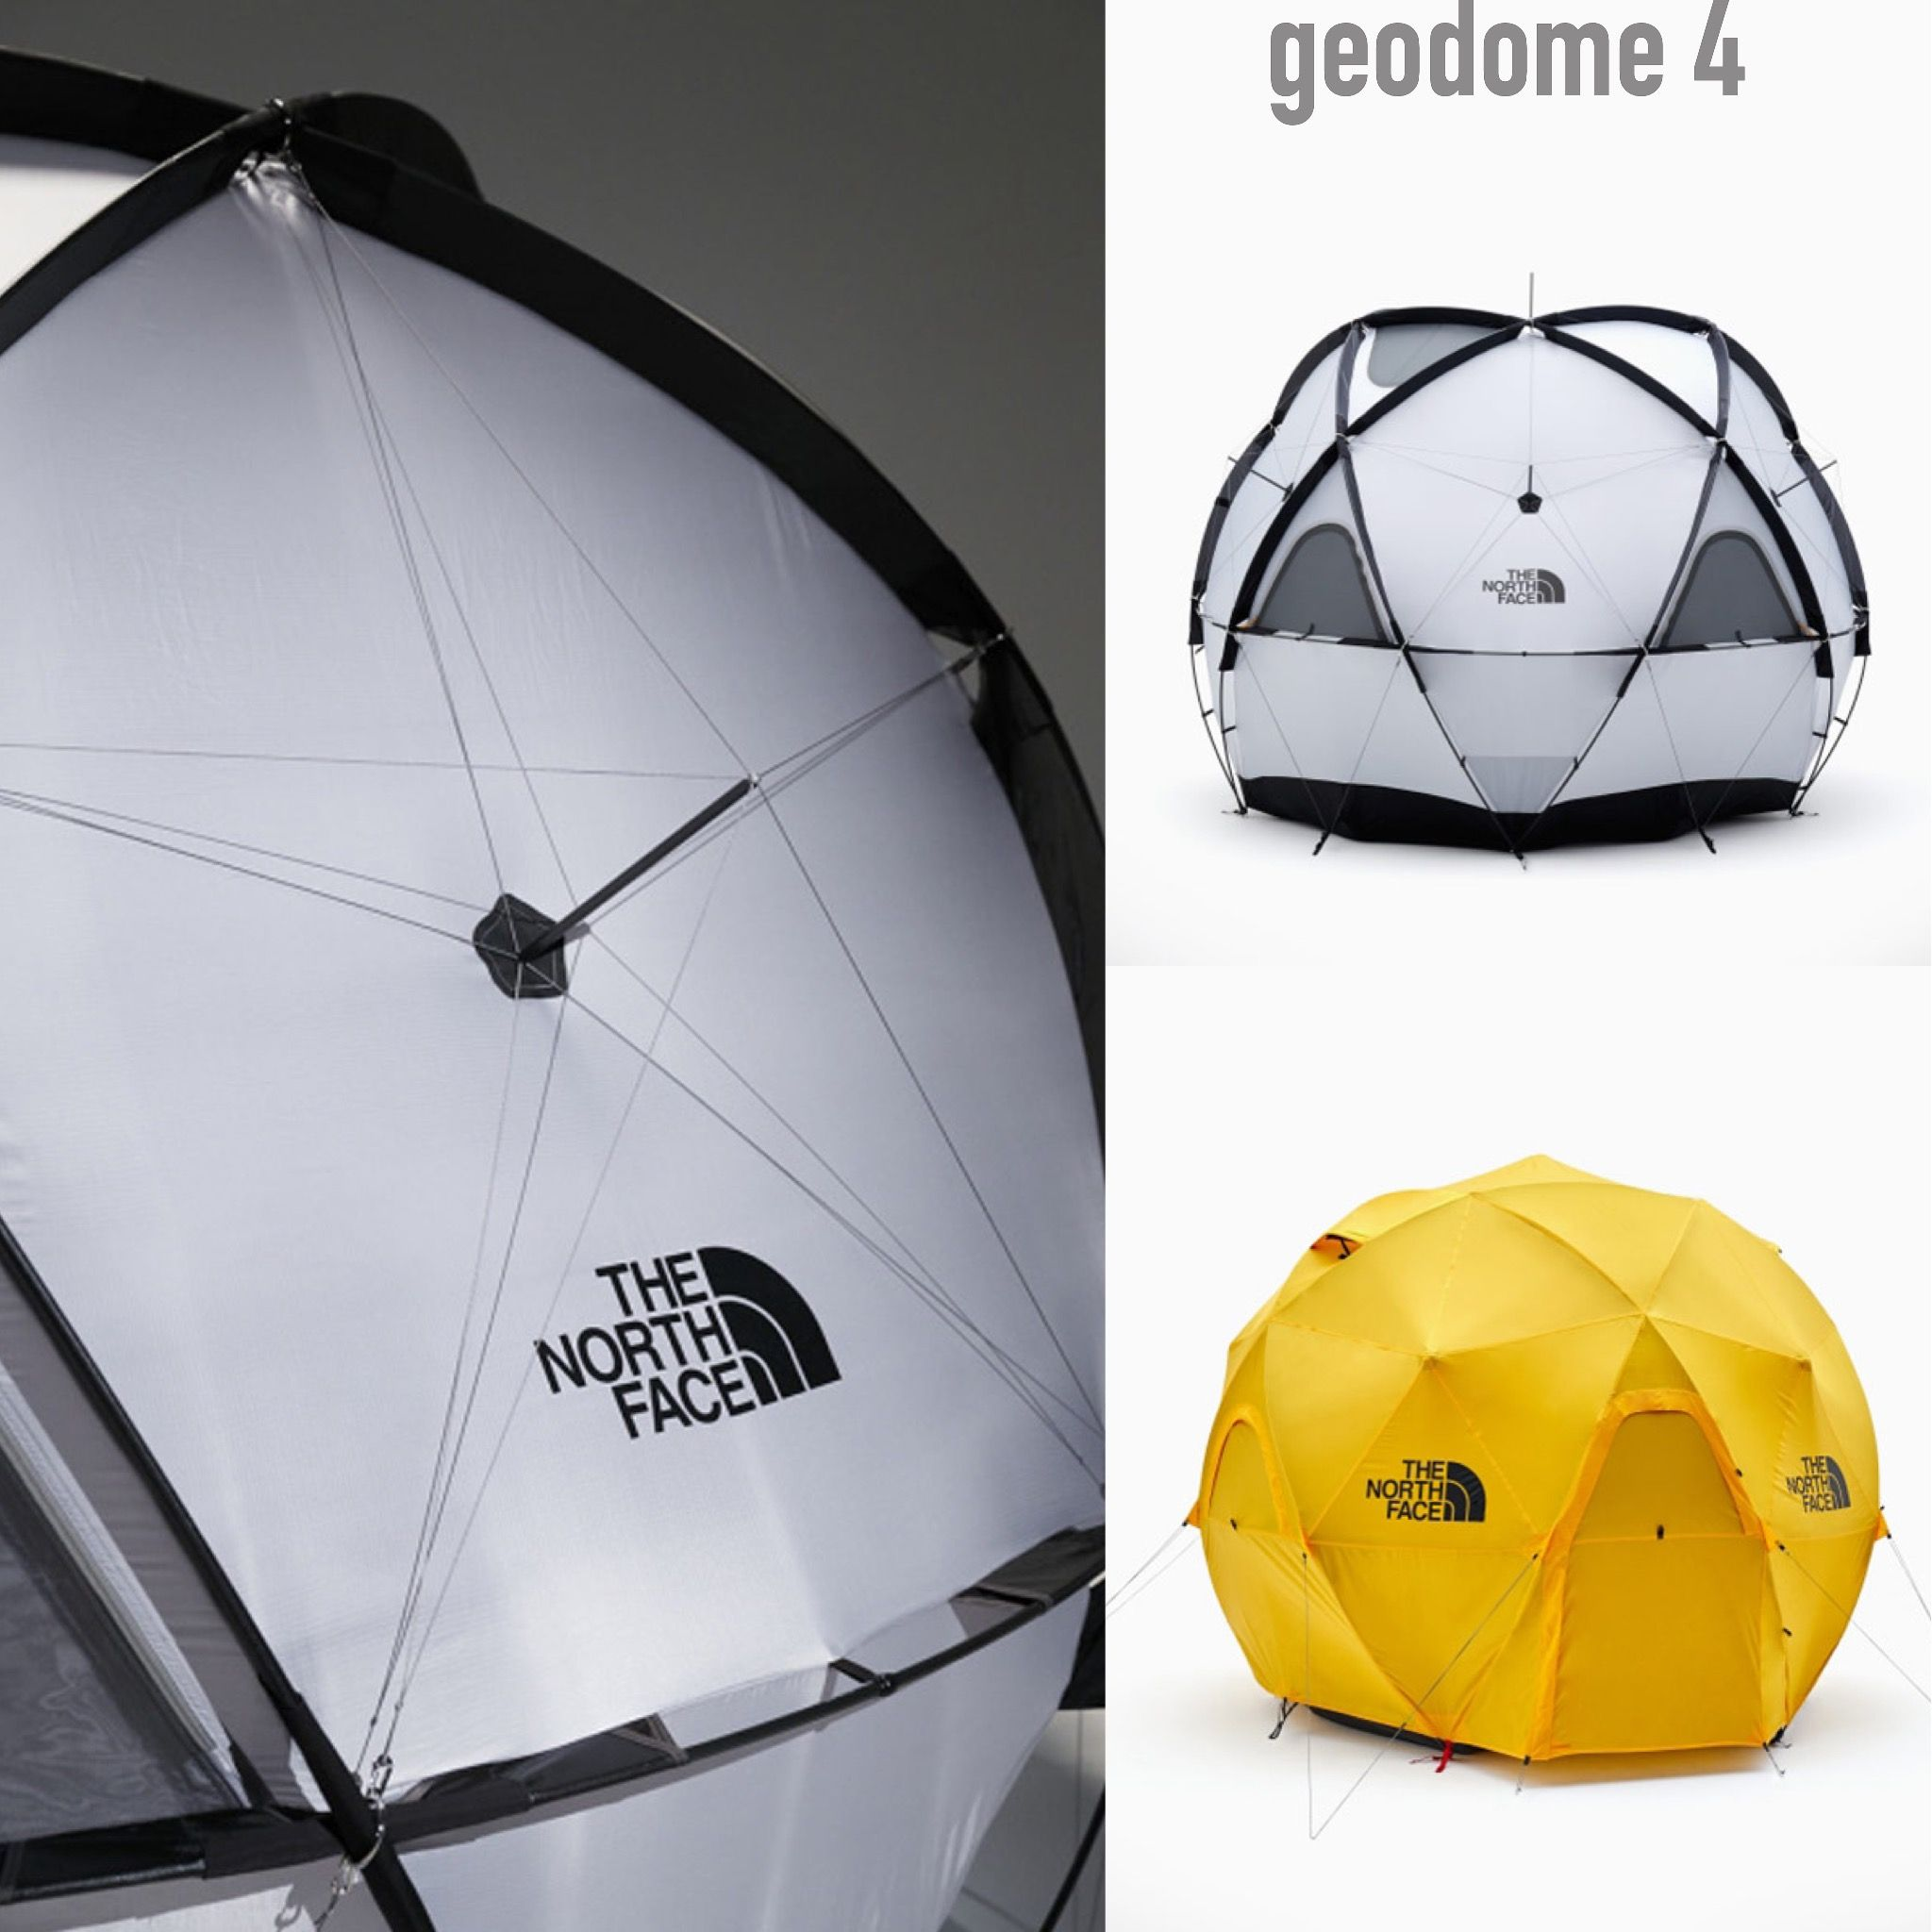 a0fd7fded Geodome 4 - North Face Tent | Product Design | Tent, Outdoor ...